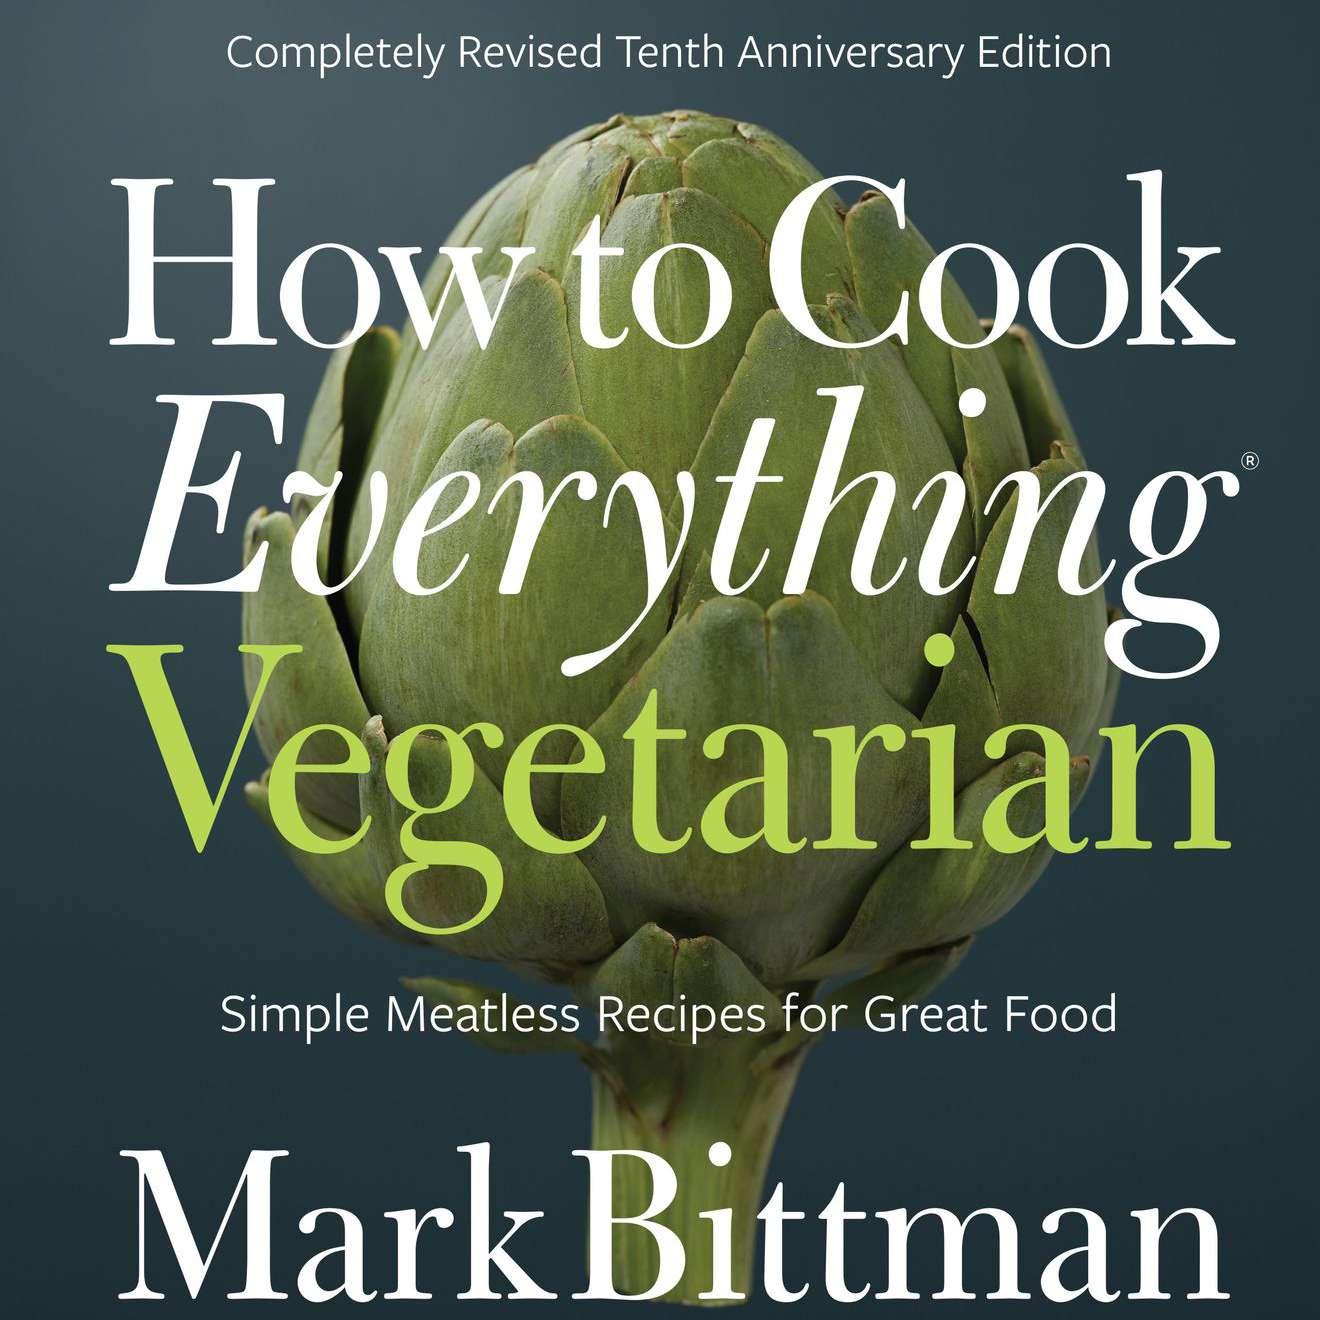 Cover of How to Cook Everything Vegetarian by Mark Bittman